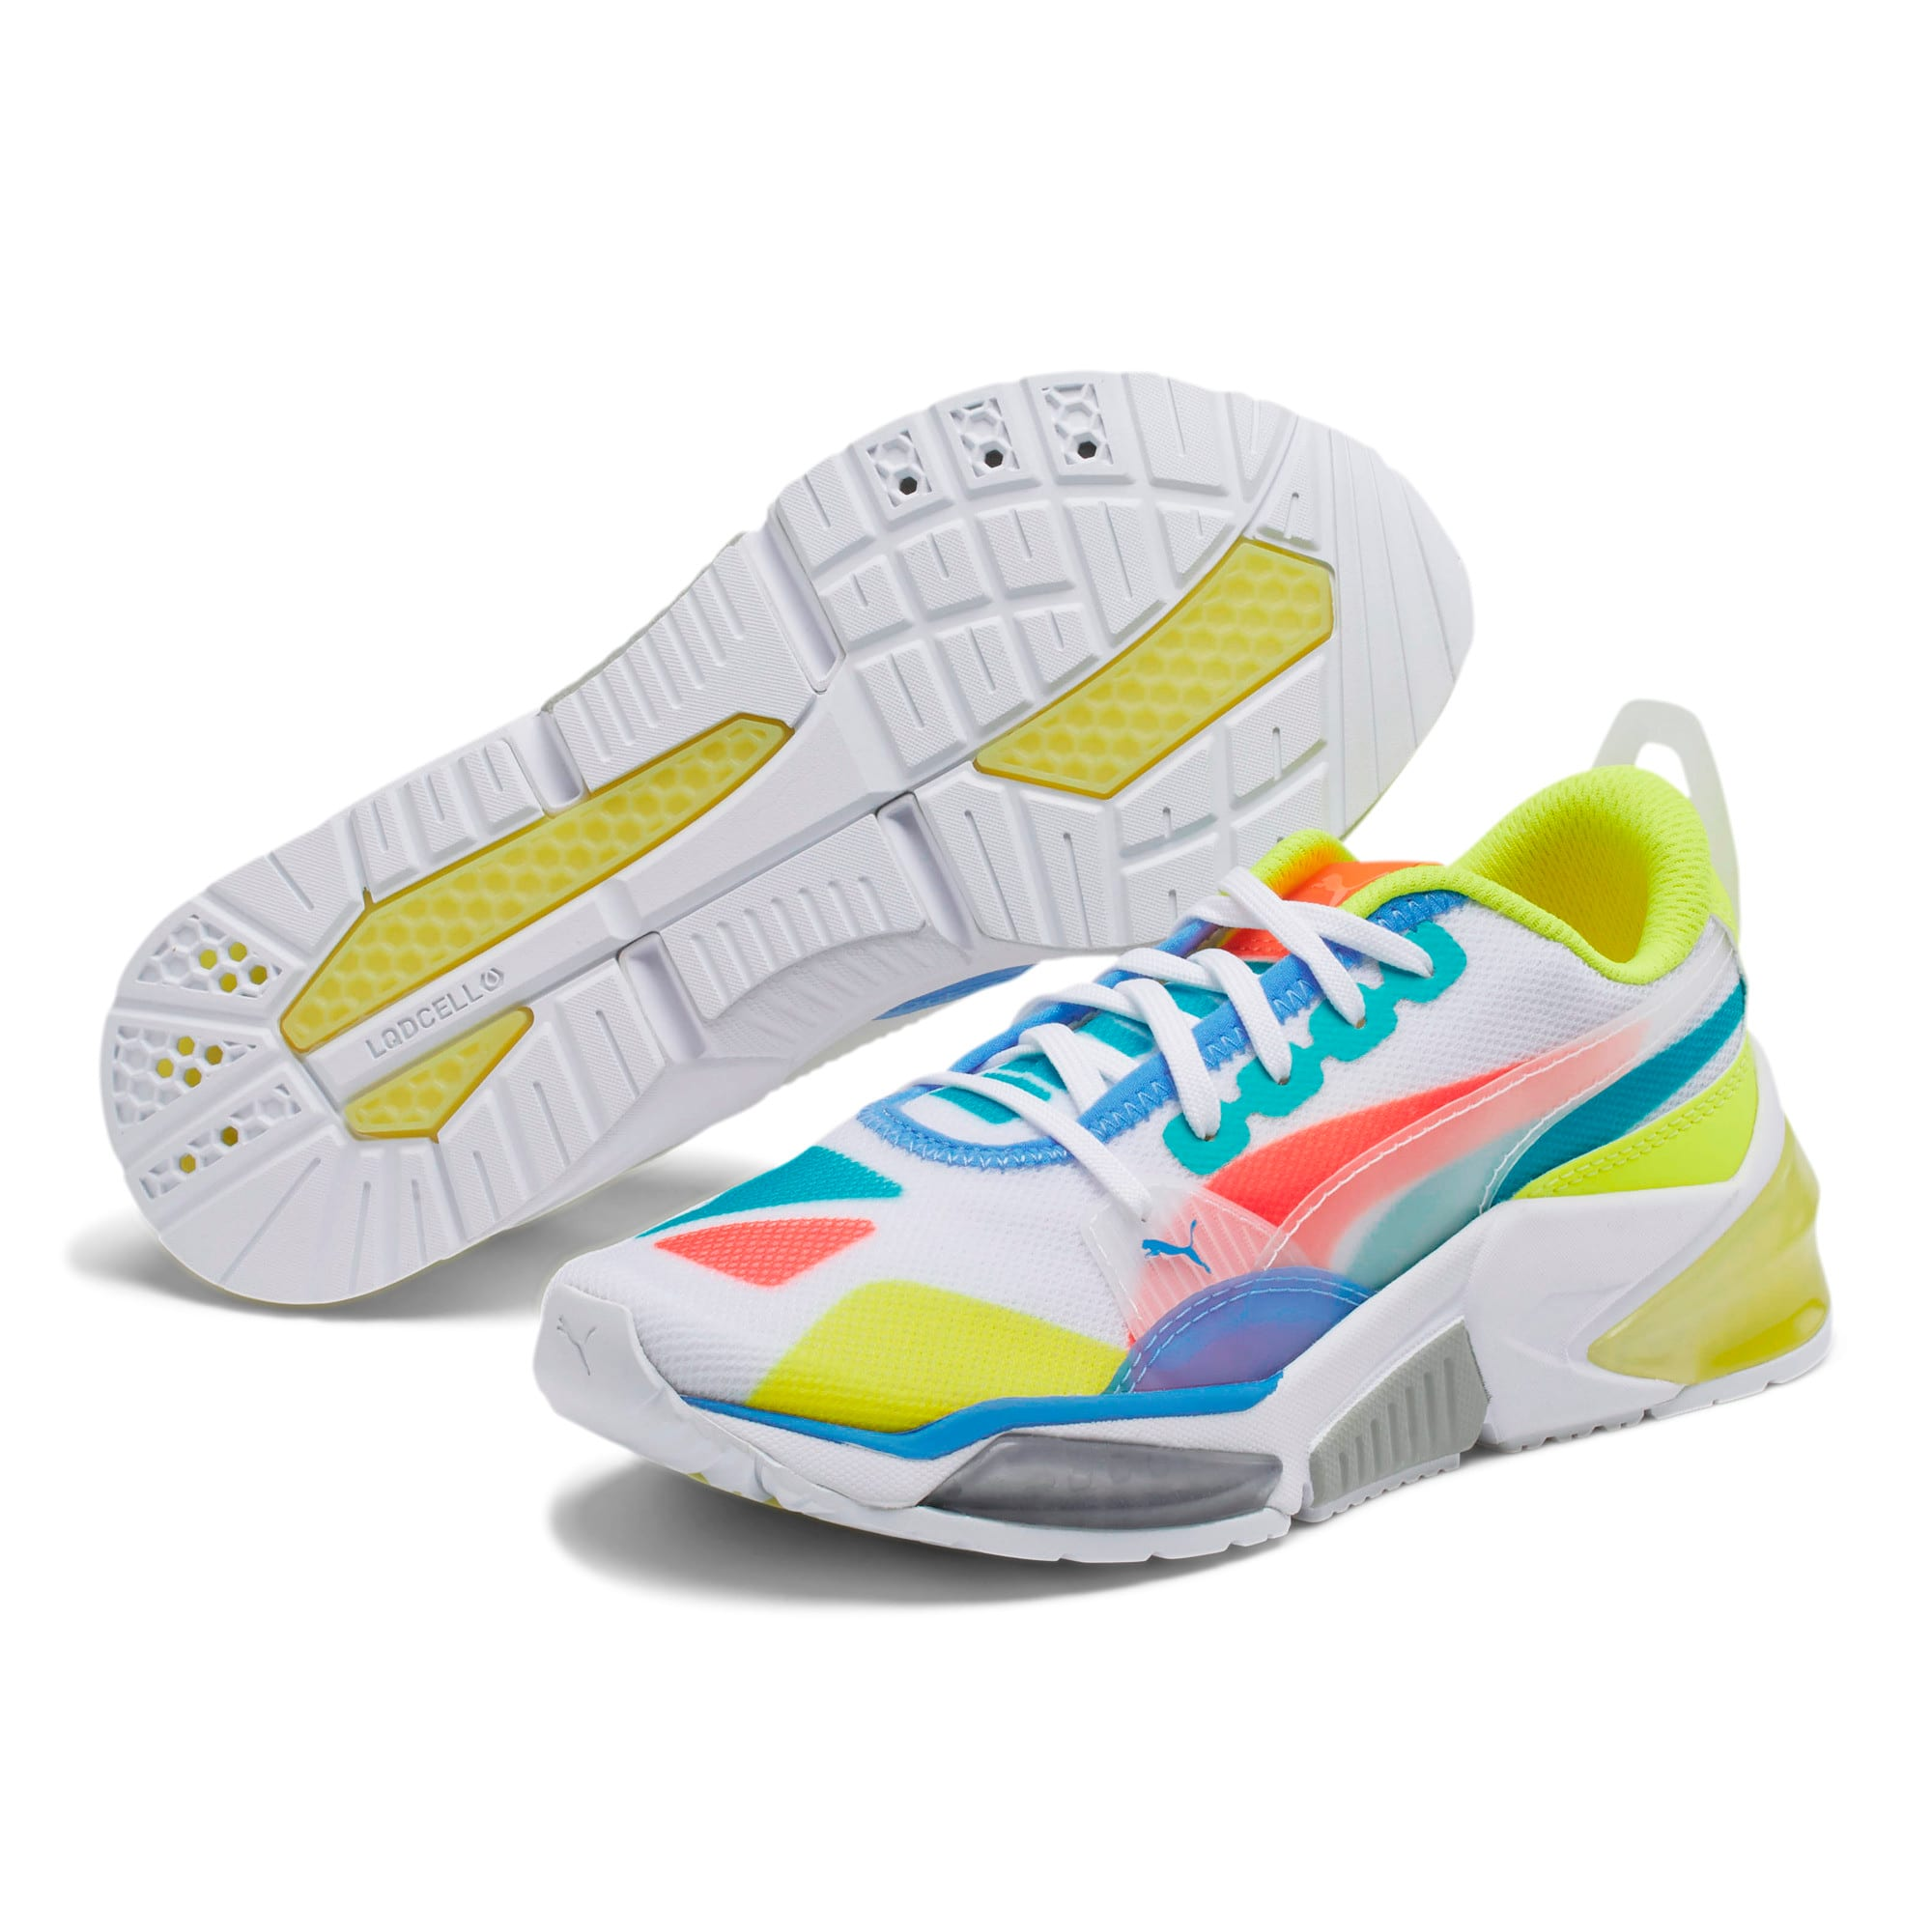 LQDCELL Optic Sheer Training Shoes JR, White-Nrgy Rose-Yellow, large